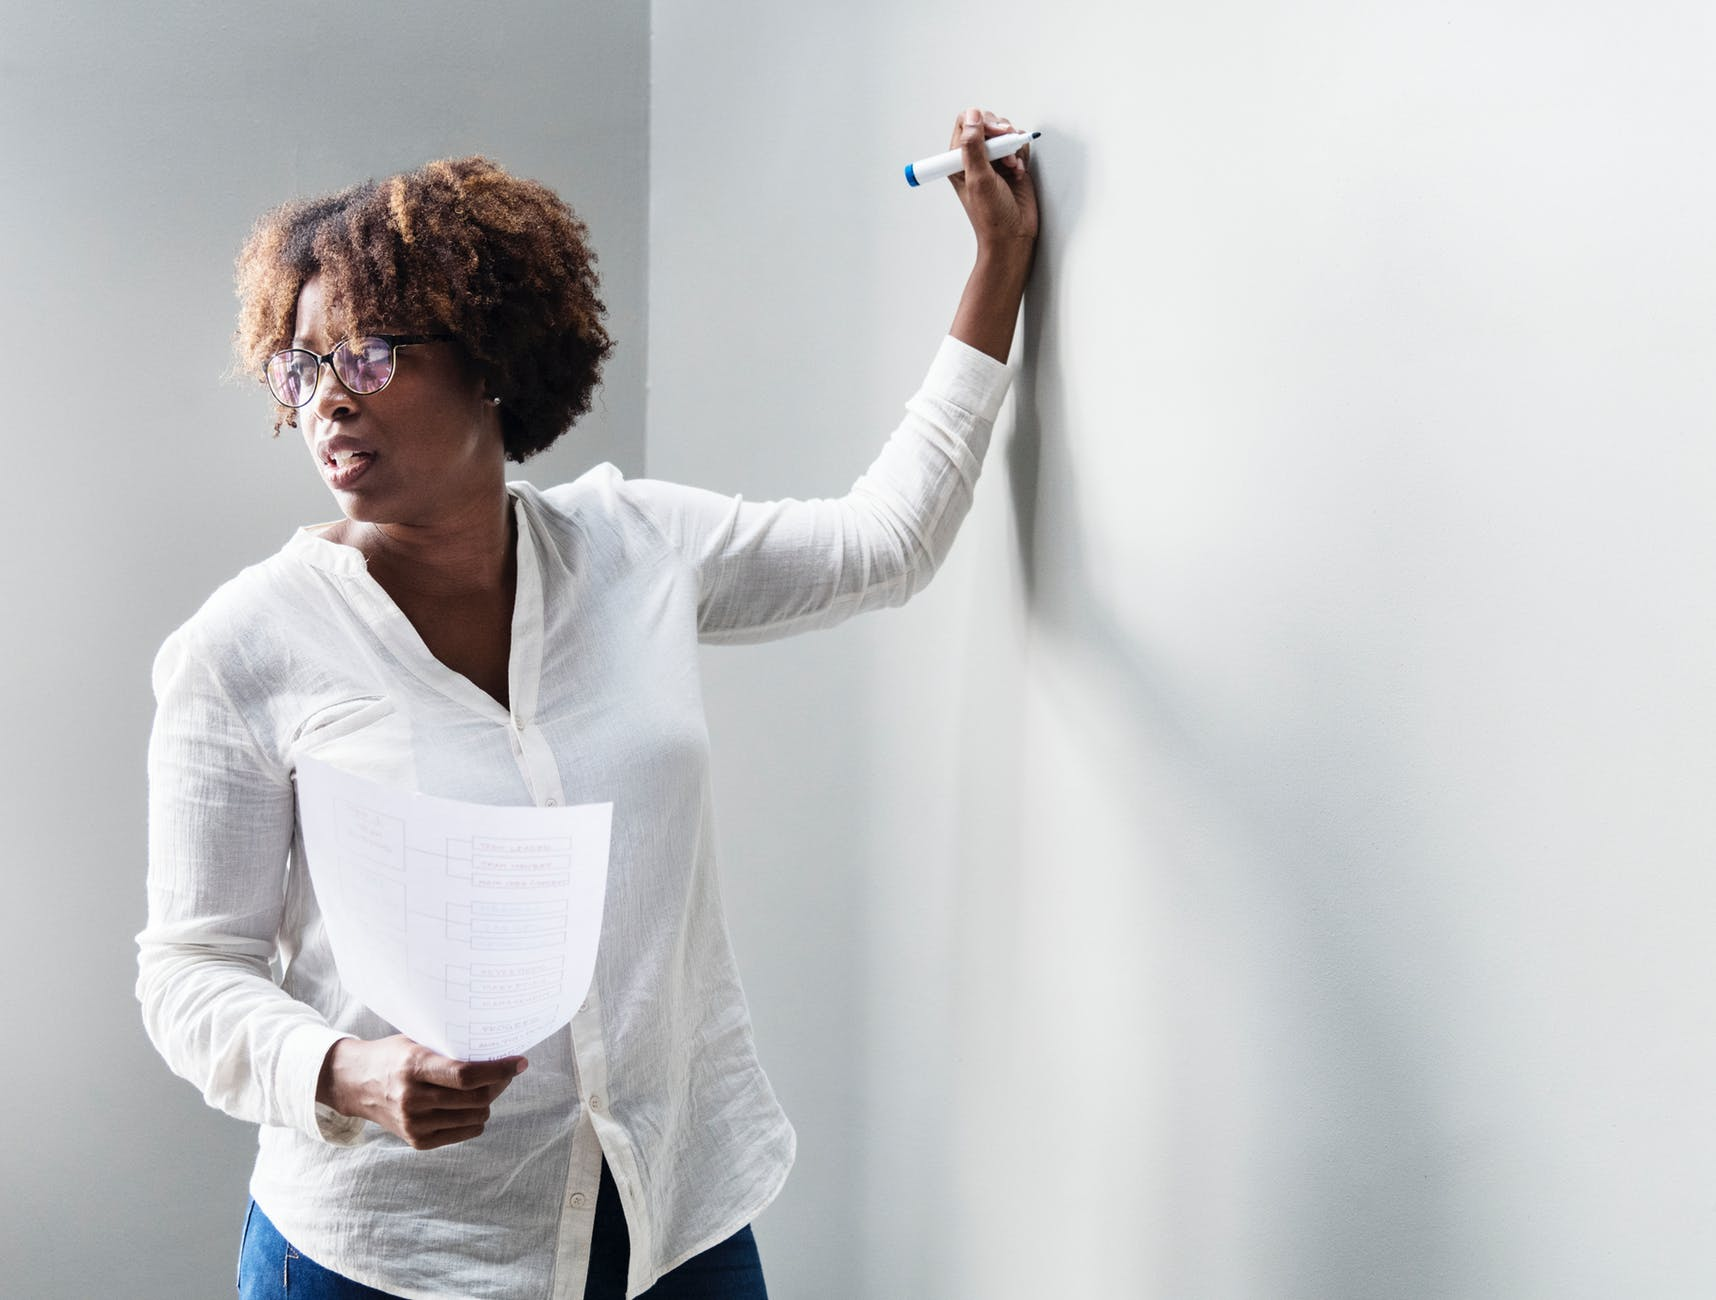 woman writing in white board